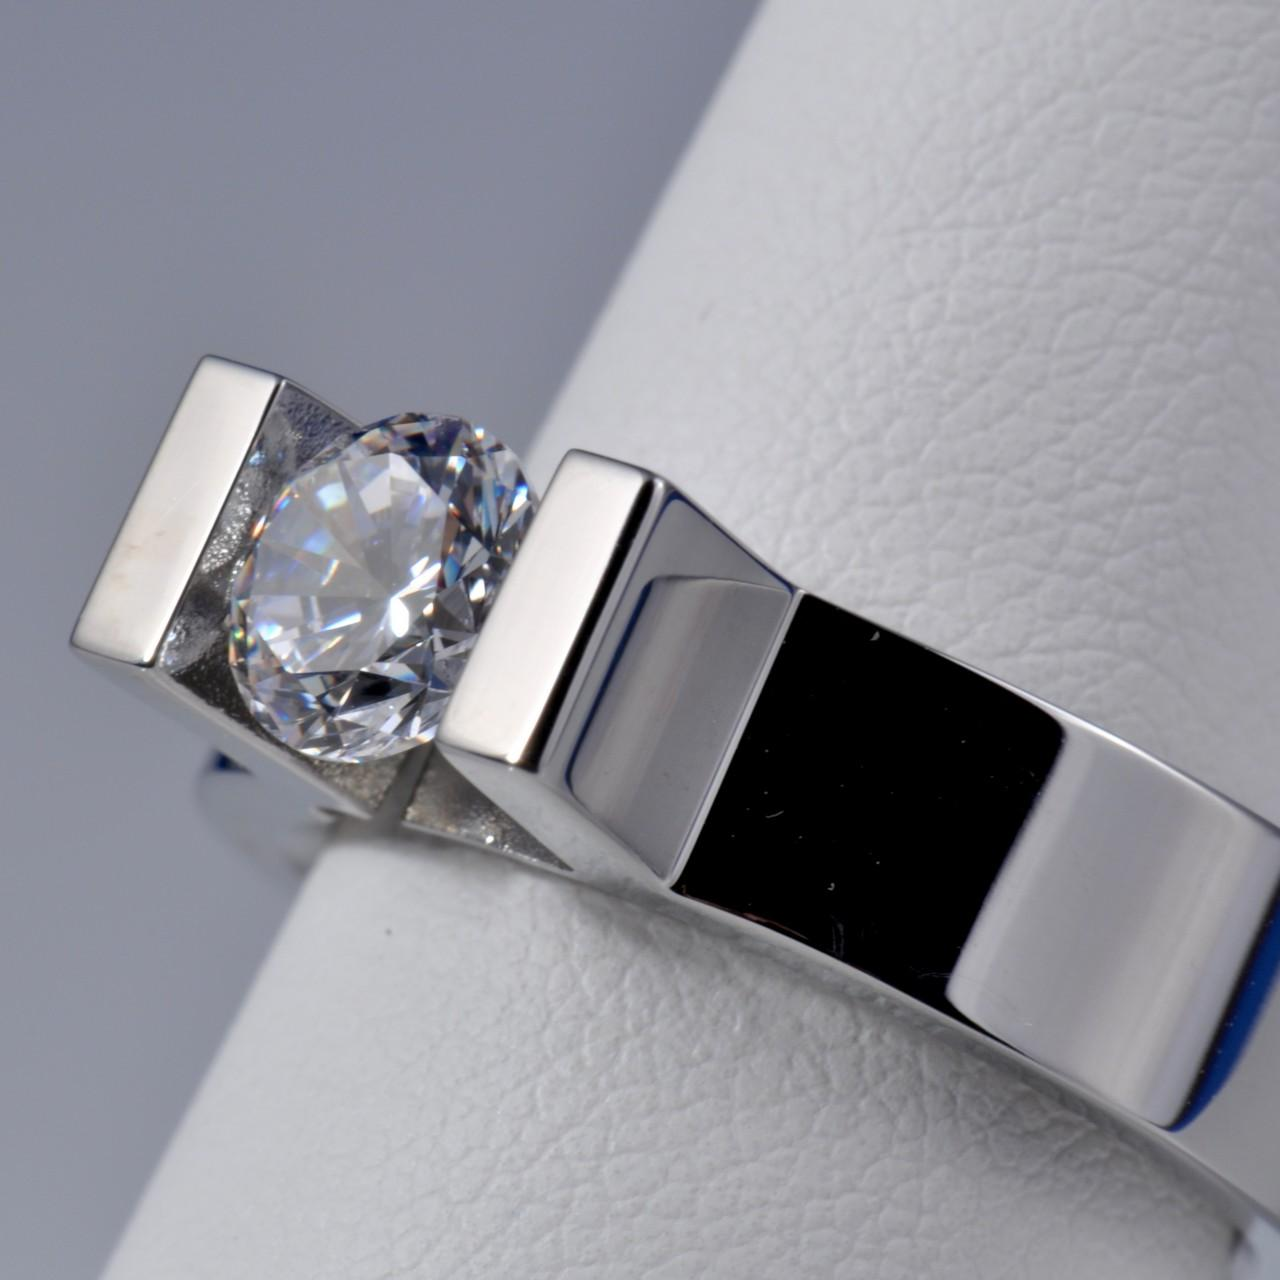 Elexia s blog a diamond ring from Zales